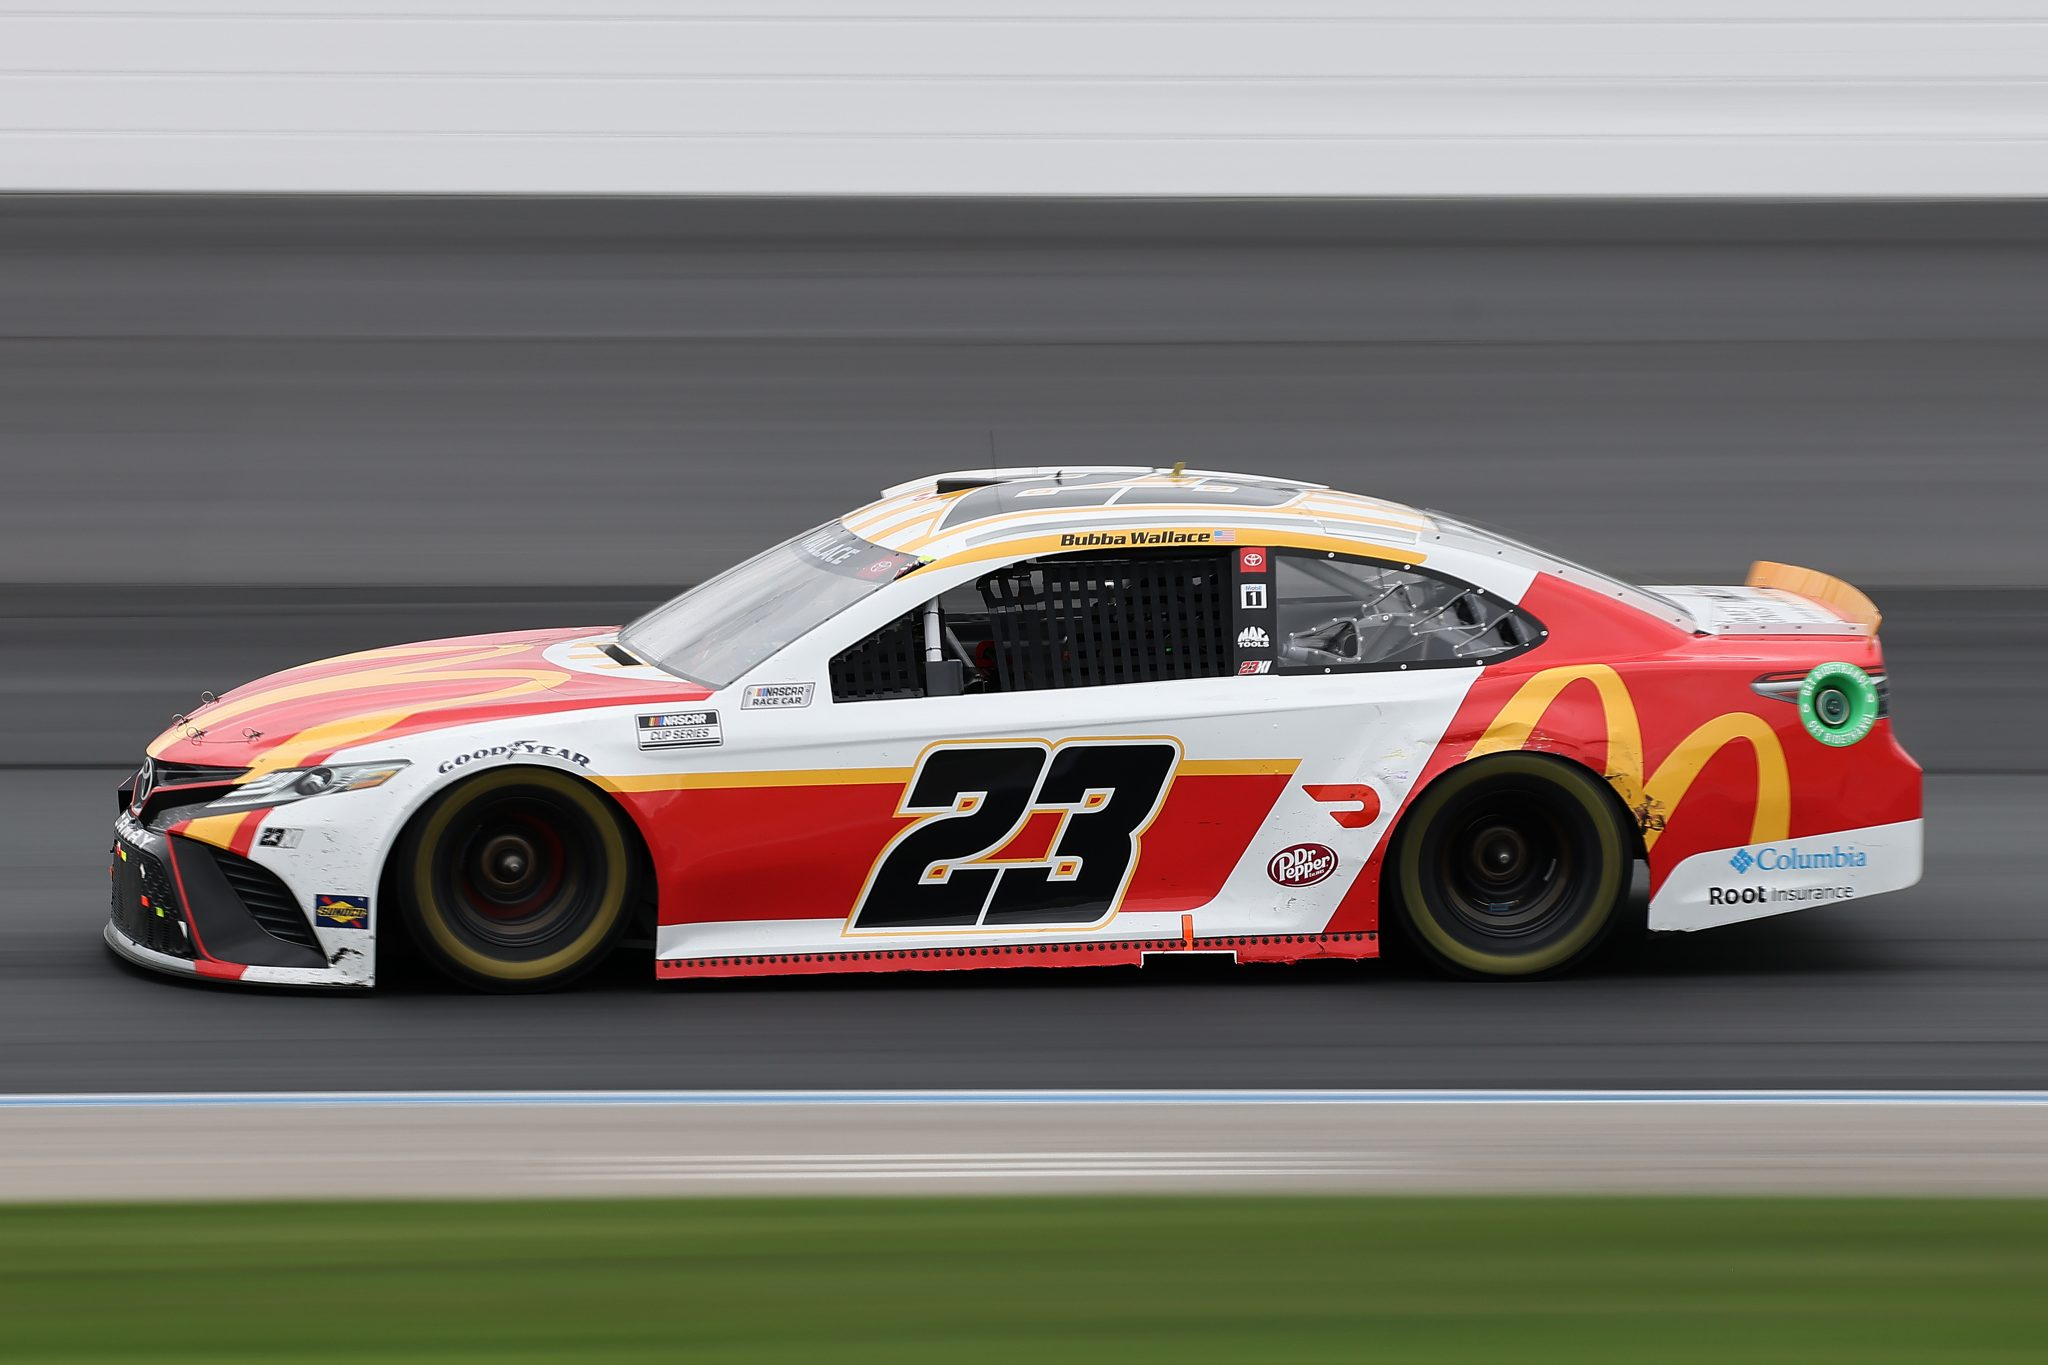 LOUDON, NEW HAMPSHIRE - JULY 18: Bubba Wallace, driver of the #23 McDonald's Toyota, drives during the NASCAR Cup Series Foxwoods Resort Casino 301 at New Hampshire Motor Speedway on July 18, 2021 in Loudon, New Hampshire. (Photo by James Gilbert/Getty Images)   Getty Images